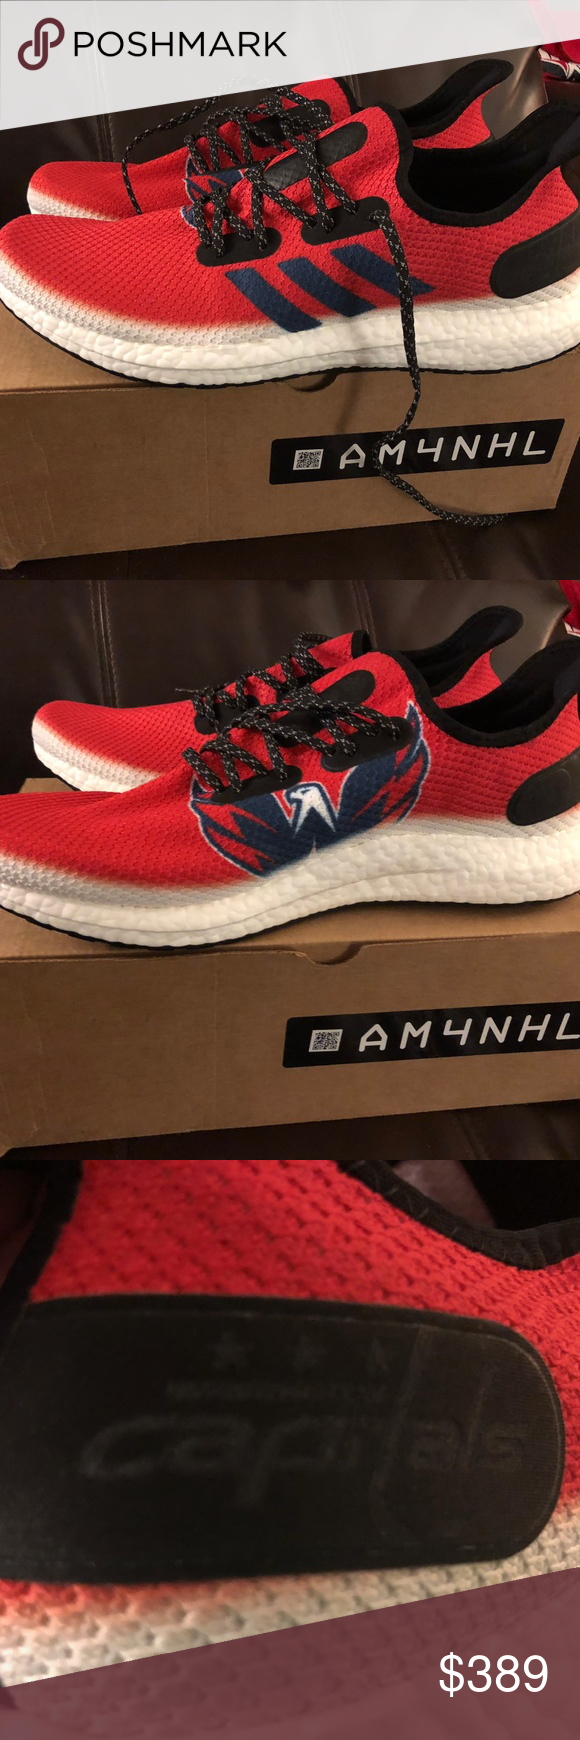 adidas SPEEDFACTORY AM4NHL Washington Capitals adidas SPEEDFACTORY AM4NHL  Washington Capitals Stanley Cup Shoes NEW adidas Shoes Athletic Shoes 29509f4479e4